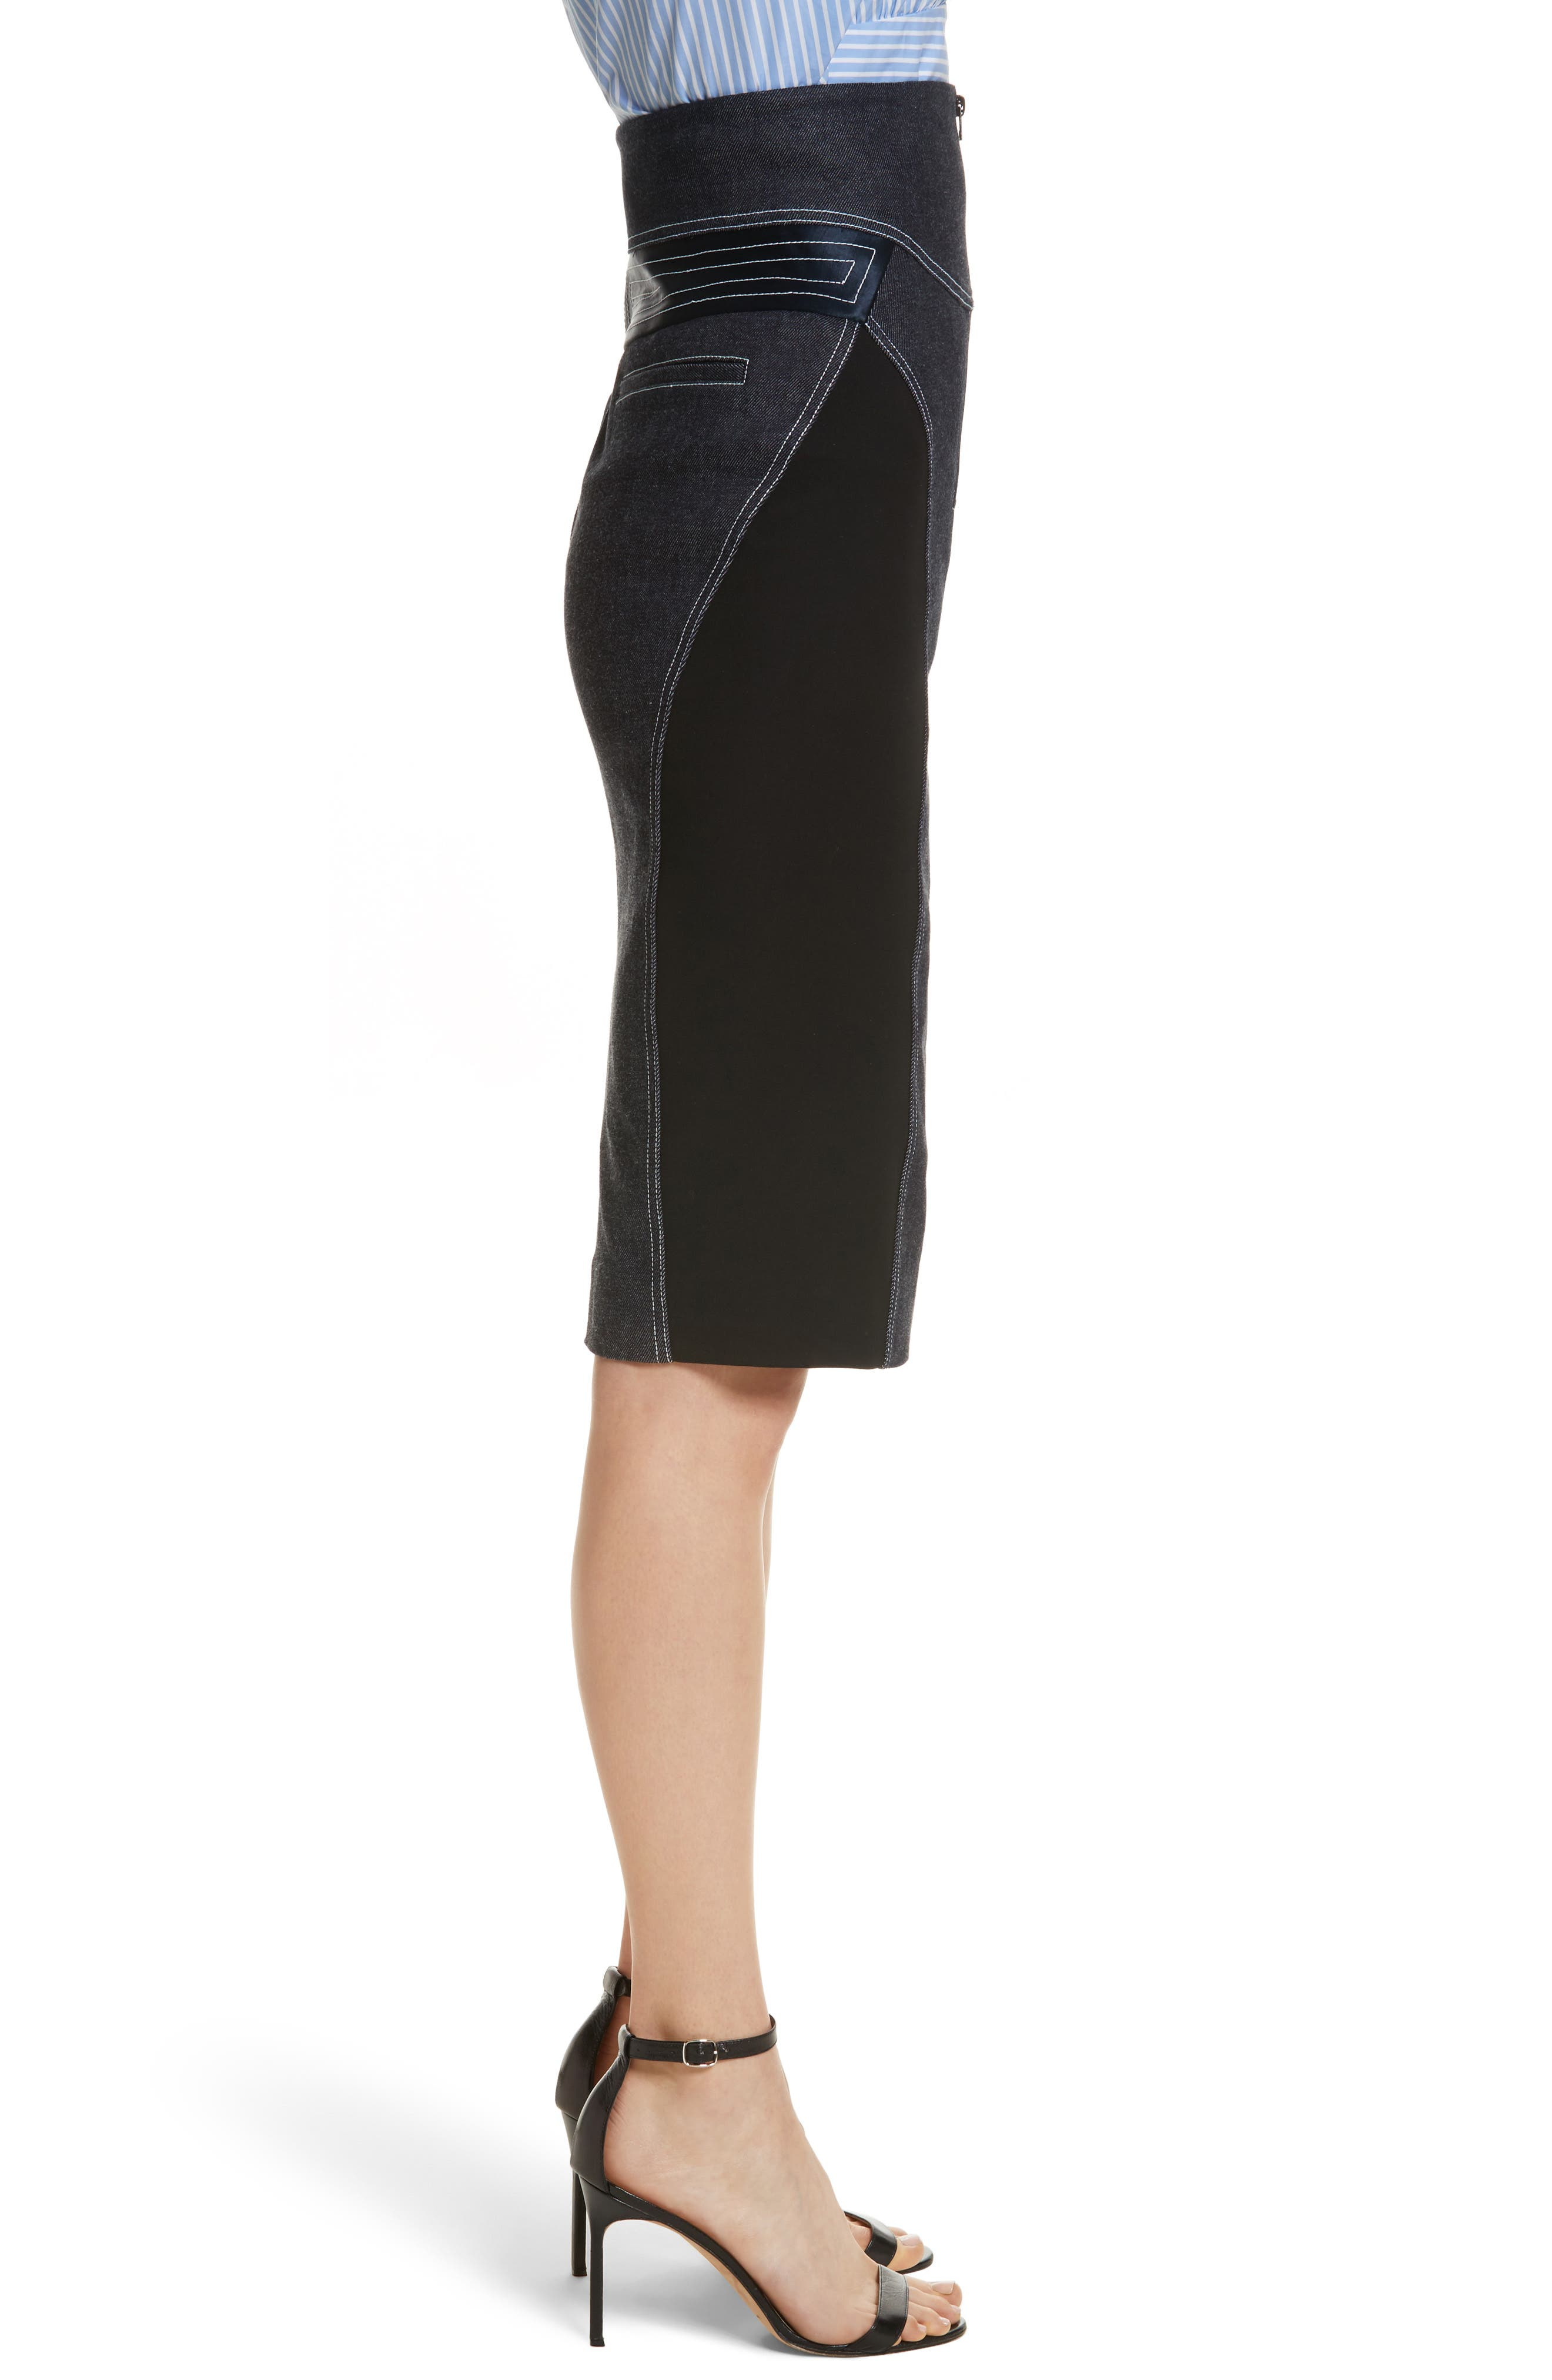 Diane von Furstenberg Denim Pencil Skirt,                             Alternate thumbnail 3, color,                             Indigo/ Black/ Alexander Navy